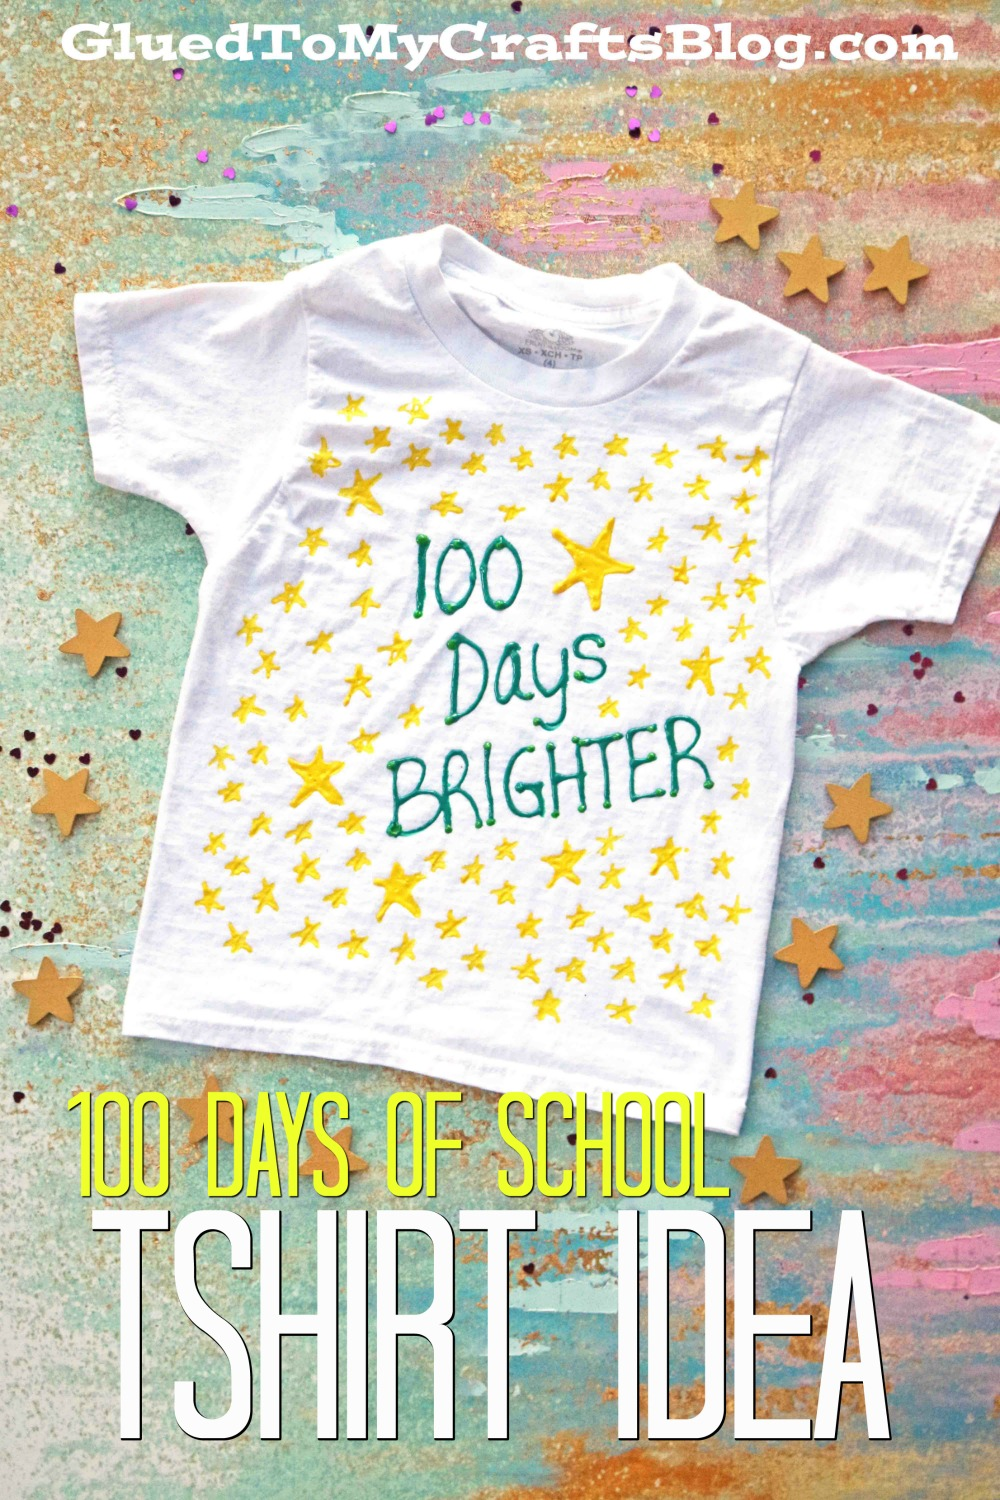 100 days brighter t shirt craft idea glued to my crafts for 100th day of school decoration ideas